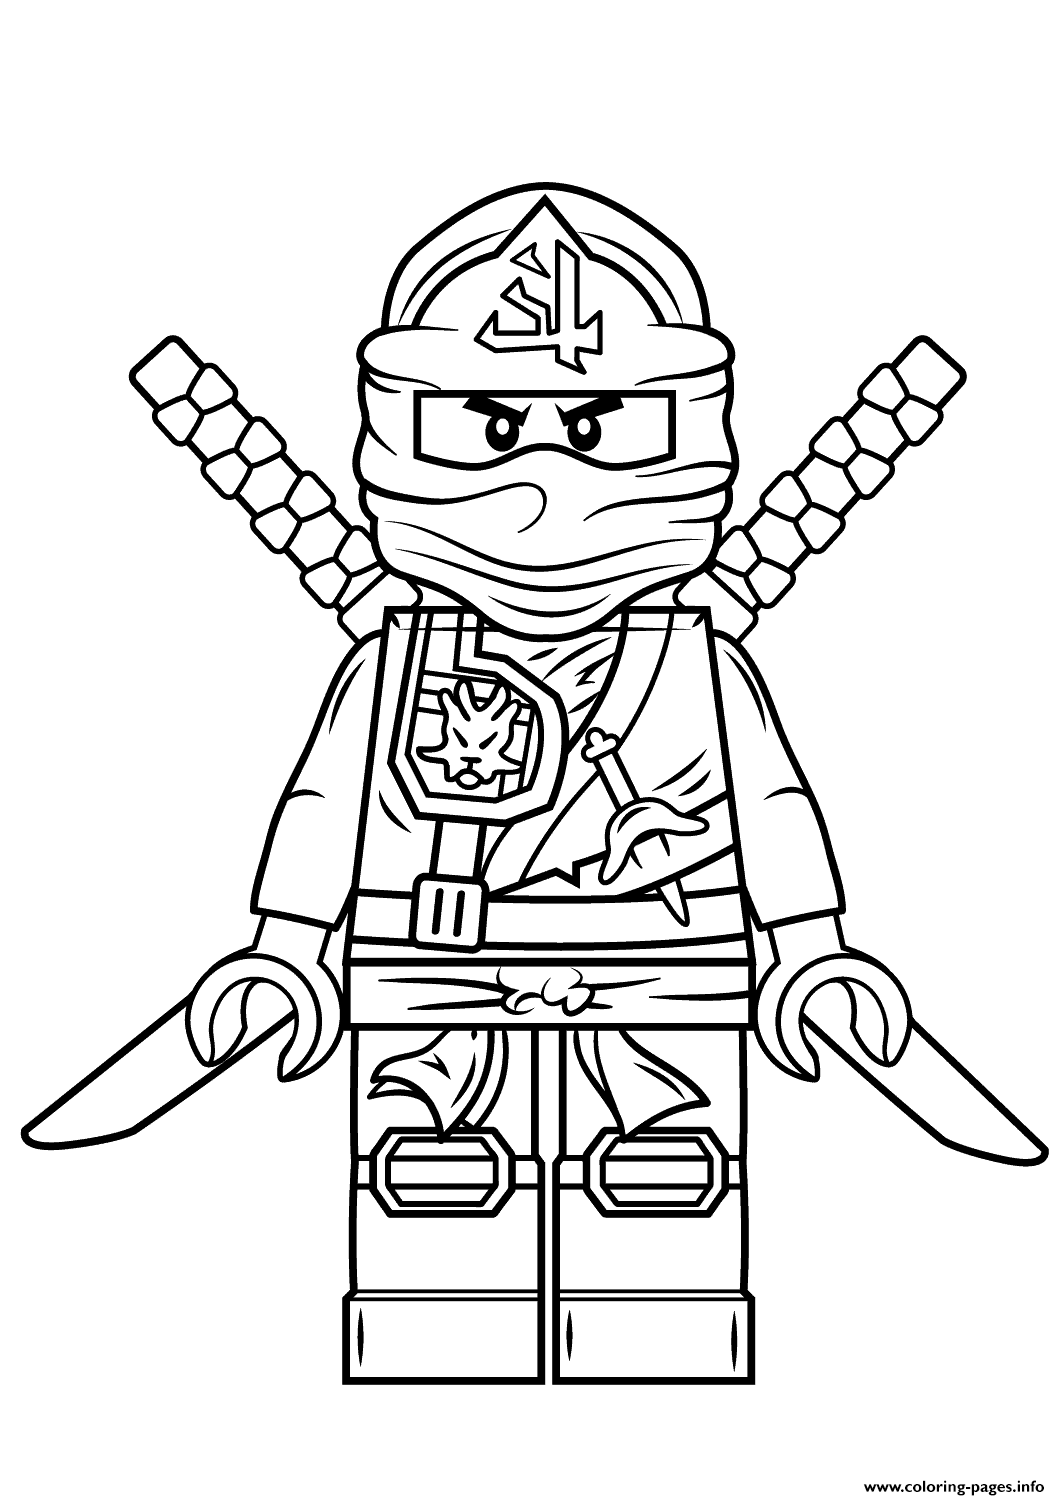 Pin Pa My Best Coloring Pages